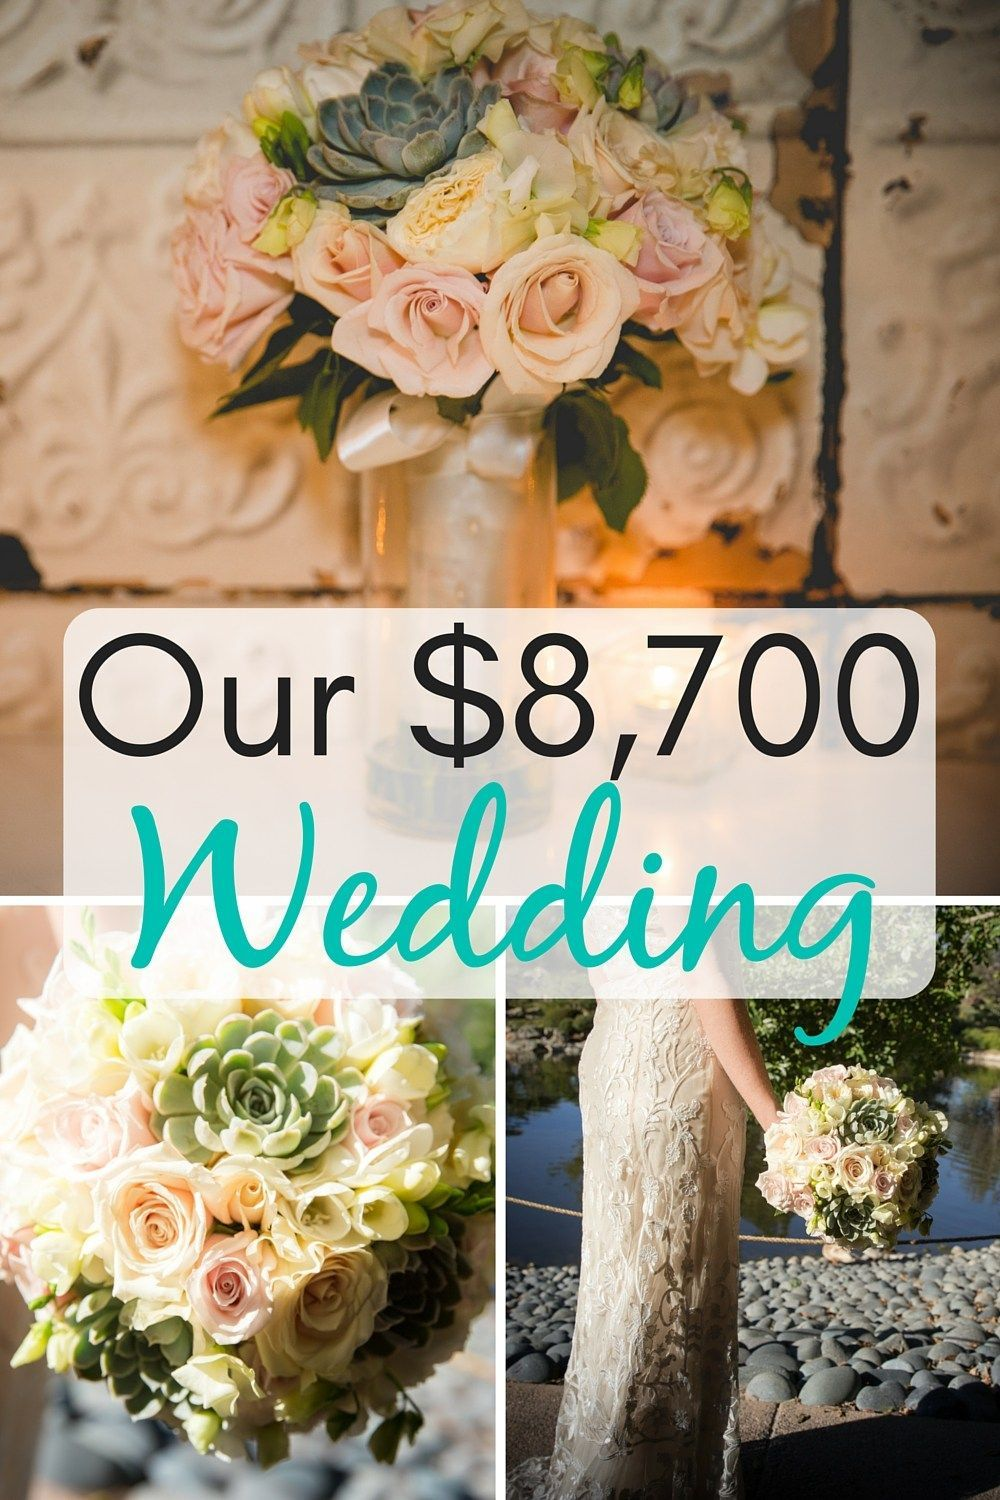 Our Wedding Budget Breakdown: How we did our wedding for under $10,000